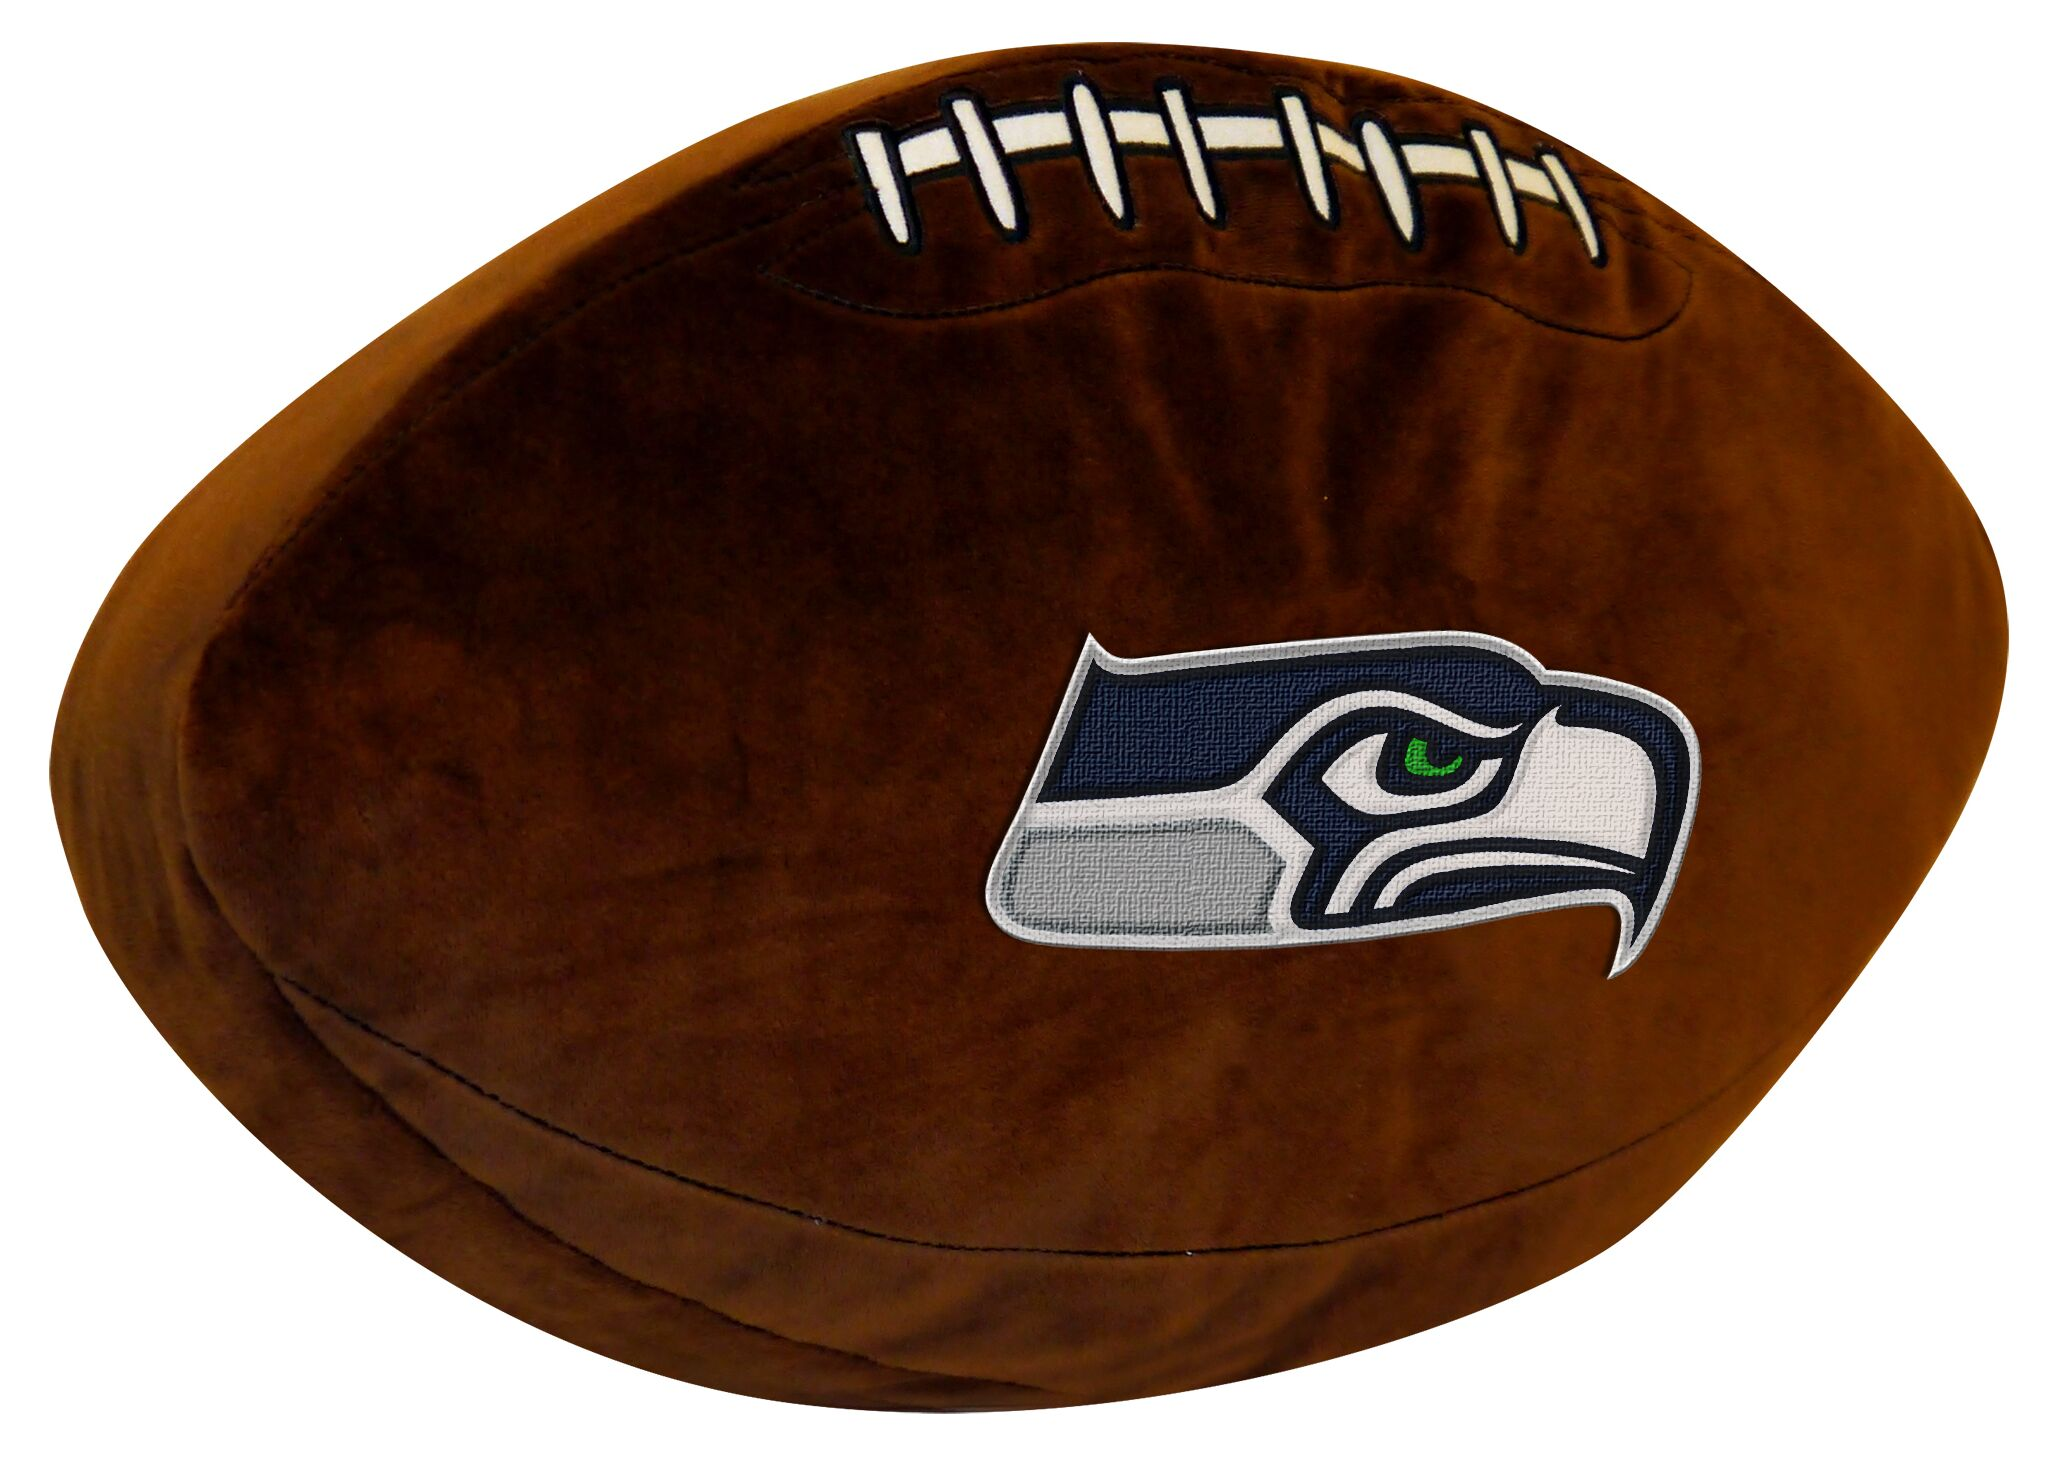 NFL Throw Pillow NFL Team: Seahawks